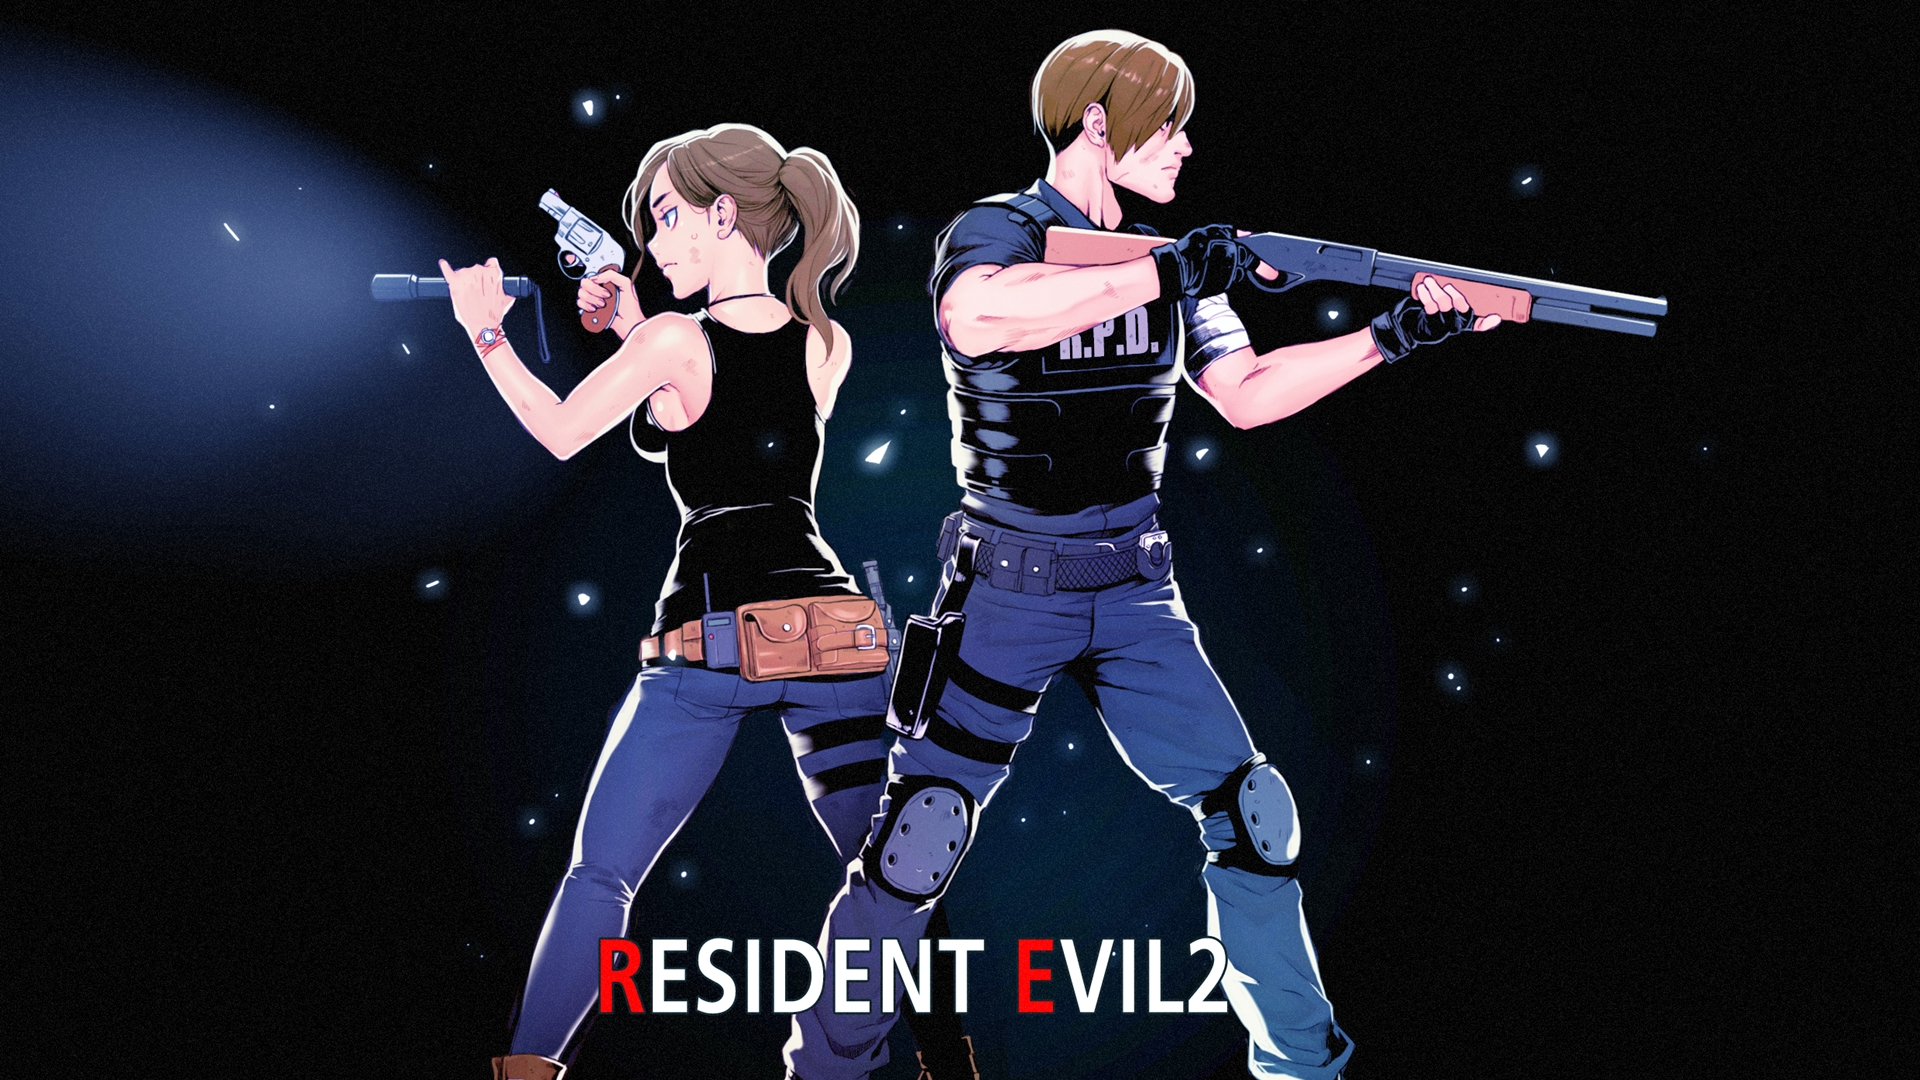 Claire Redfield Leon S Kennedy Resident Evil 2 Wallpaper